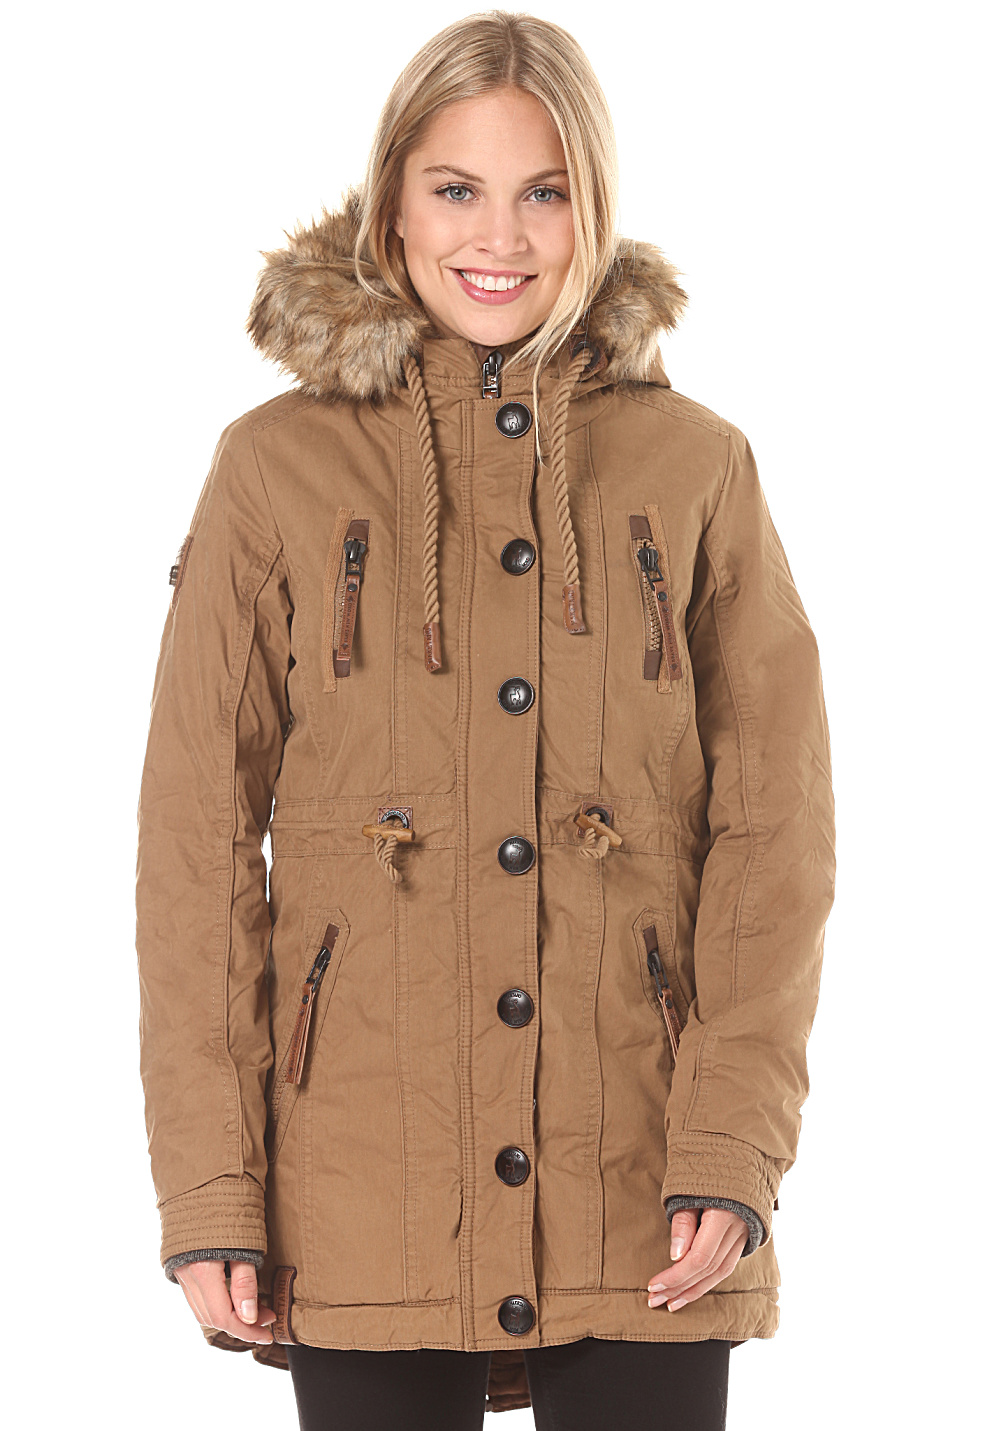 Shop the latest styles of Womens Tan/Beige Coats at Macys. Check out our designer collection of chic coats including peacoats, trench coats, puffer coats and more!